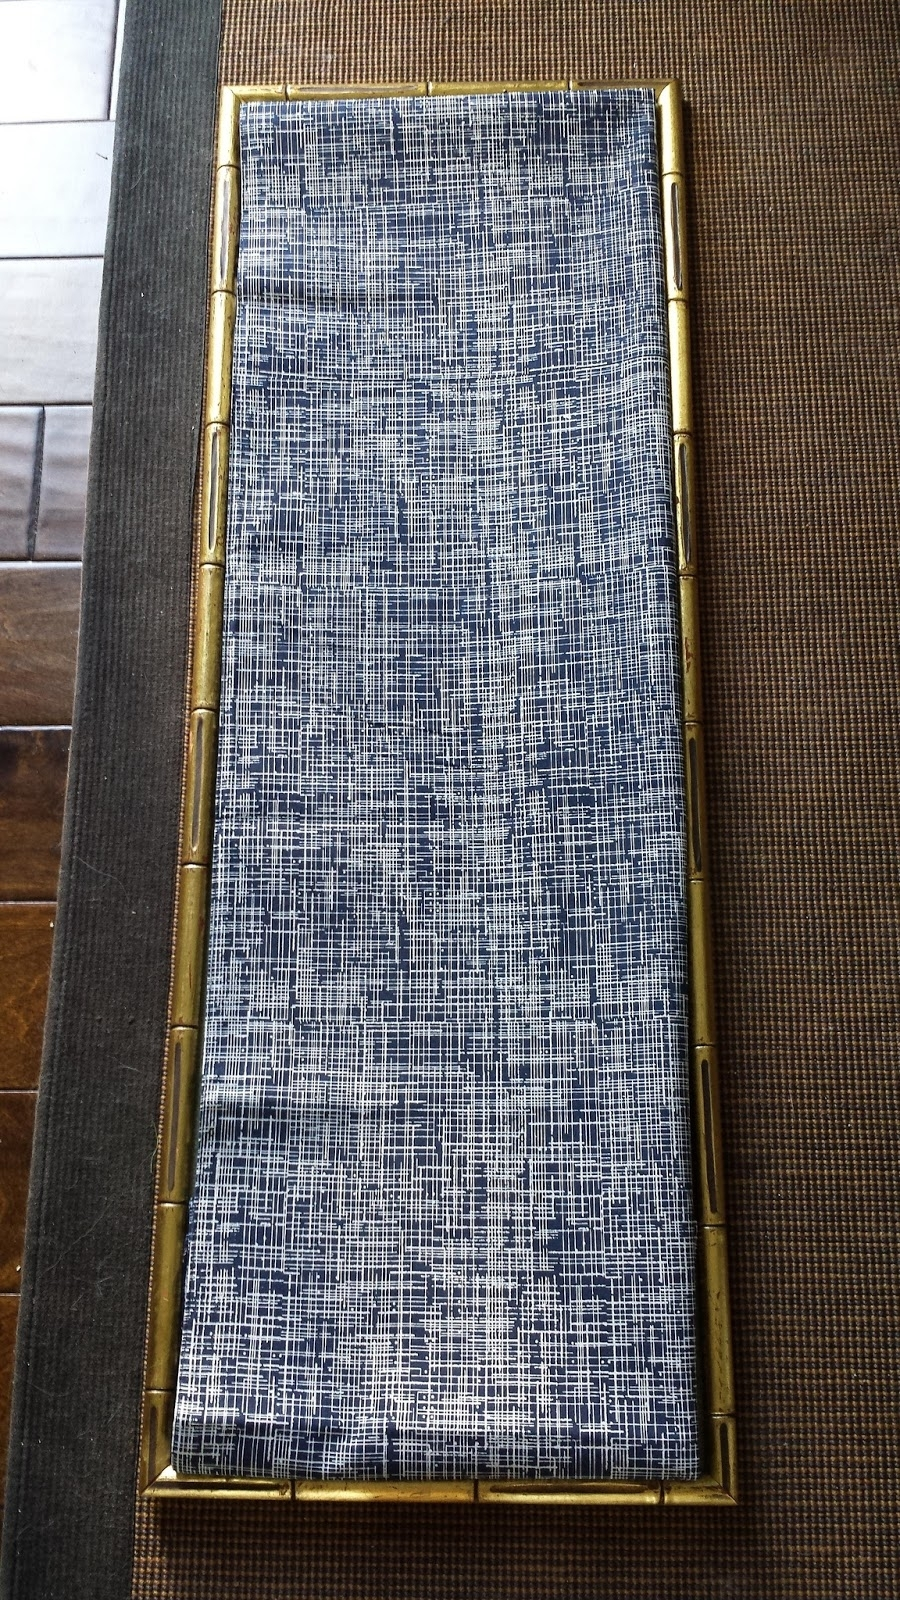 Focal Point Styling: Diy Indigo Wall Art With Framed Fabric Inside Most Recent Fabric Panels For Wall Art (View 15 of 15)